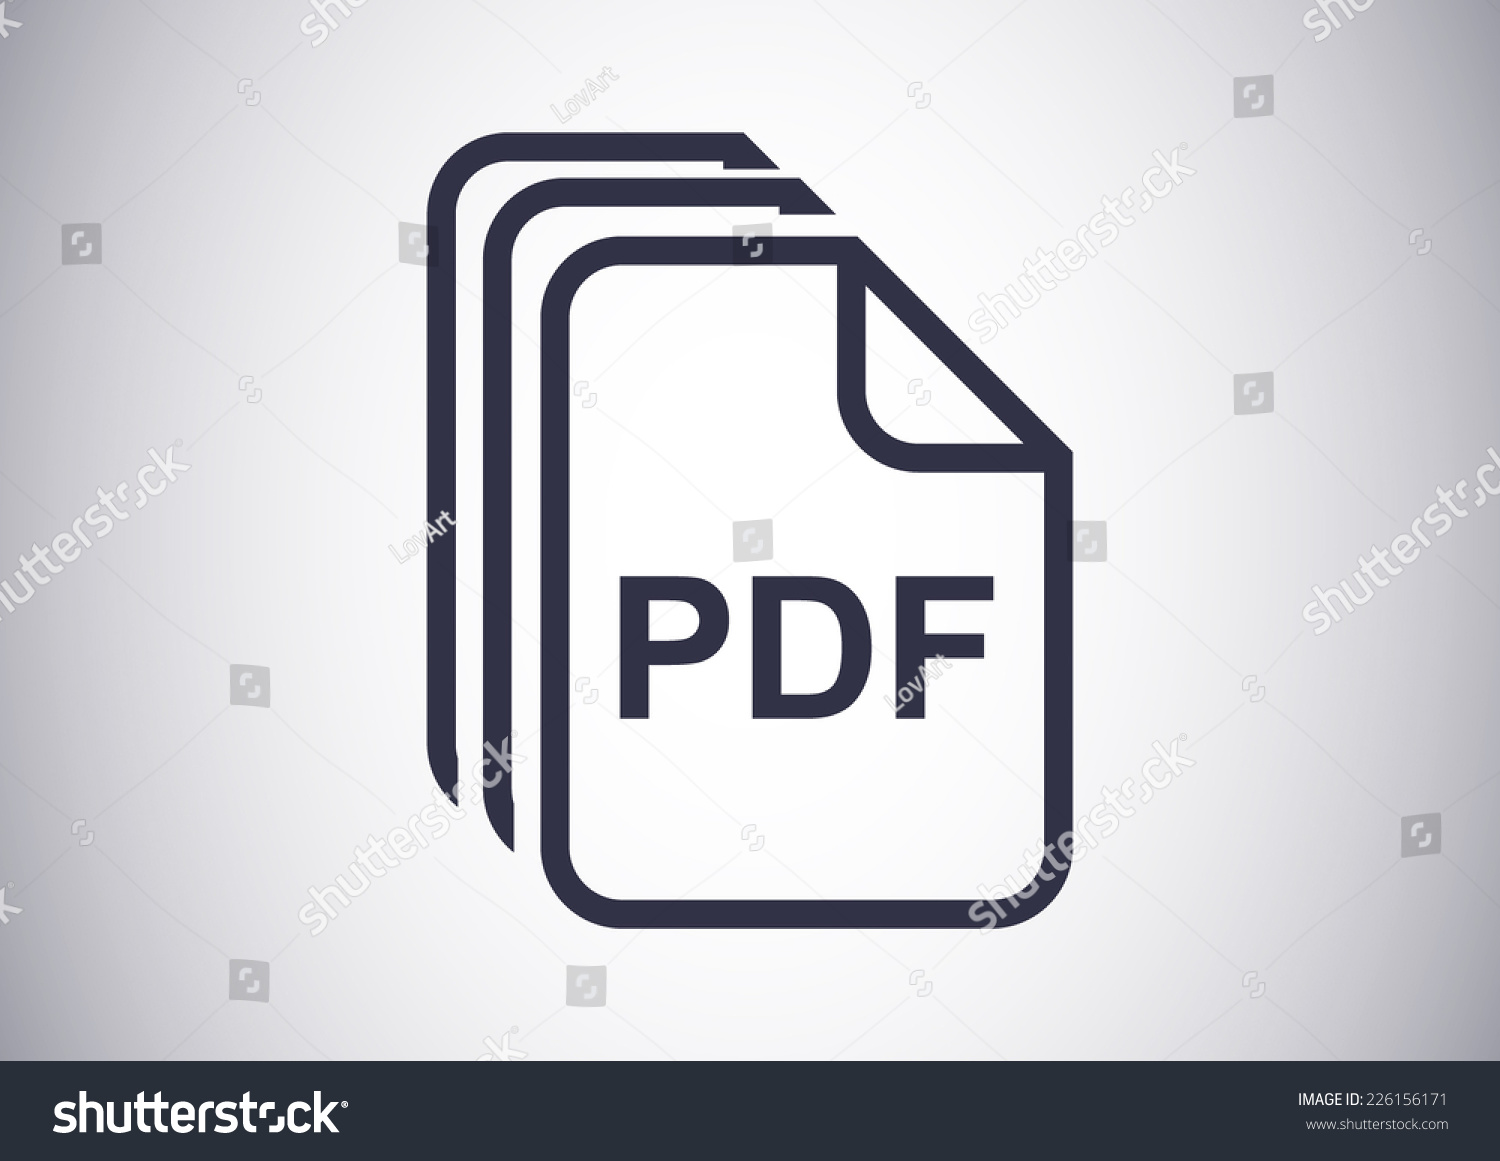 how to fix icon from pic to pdf